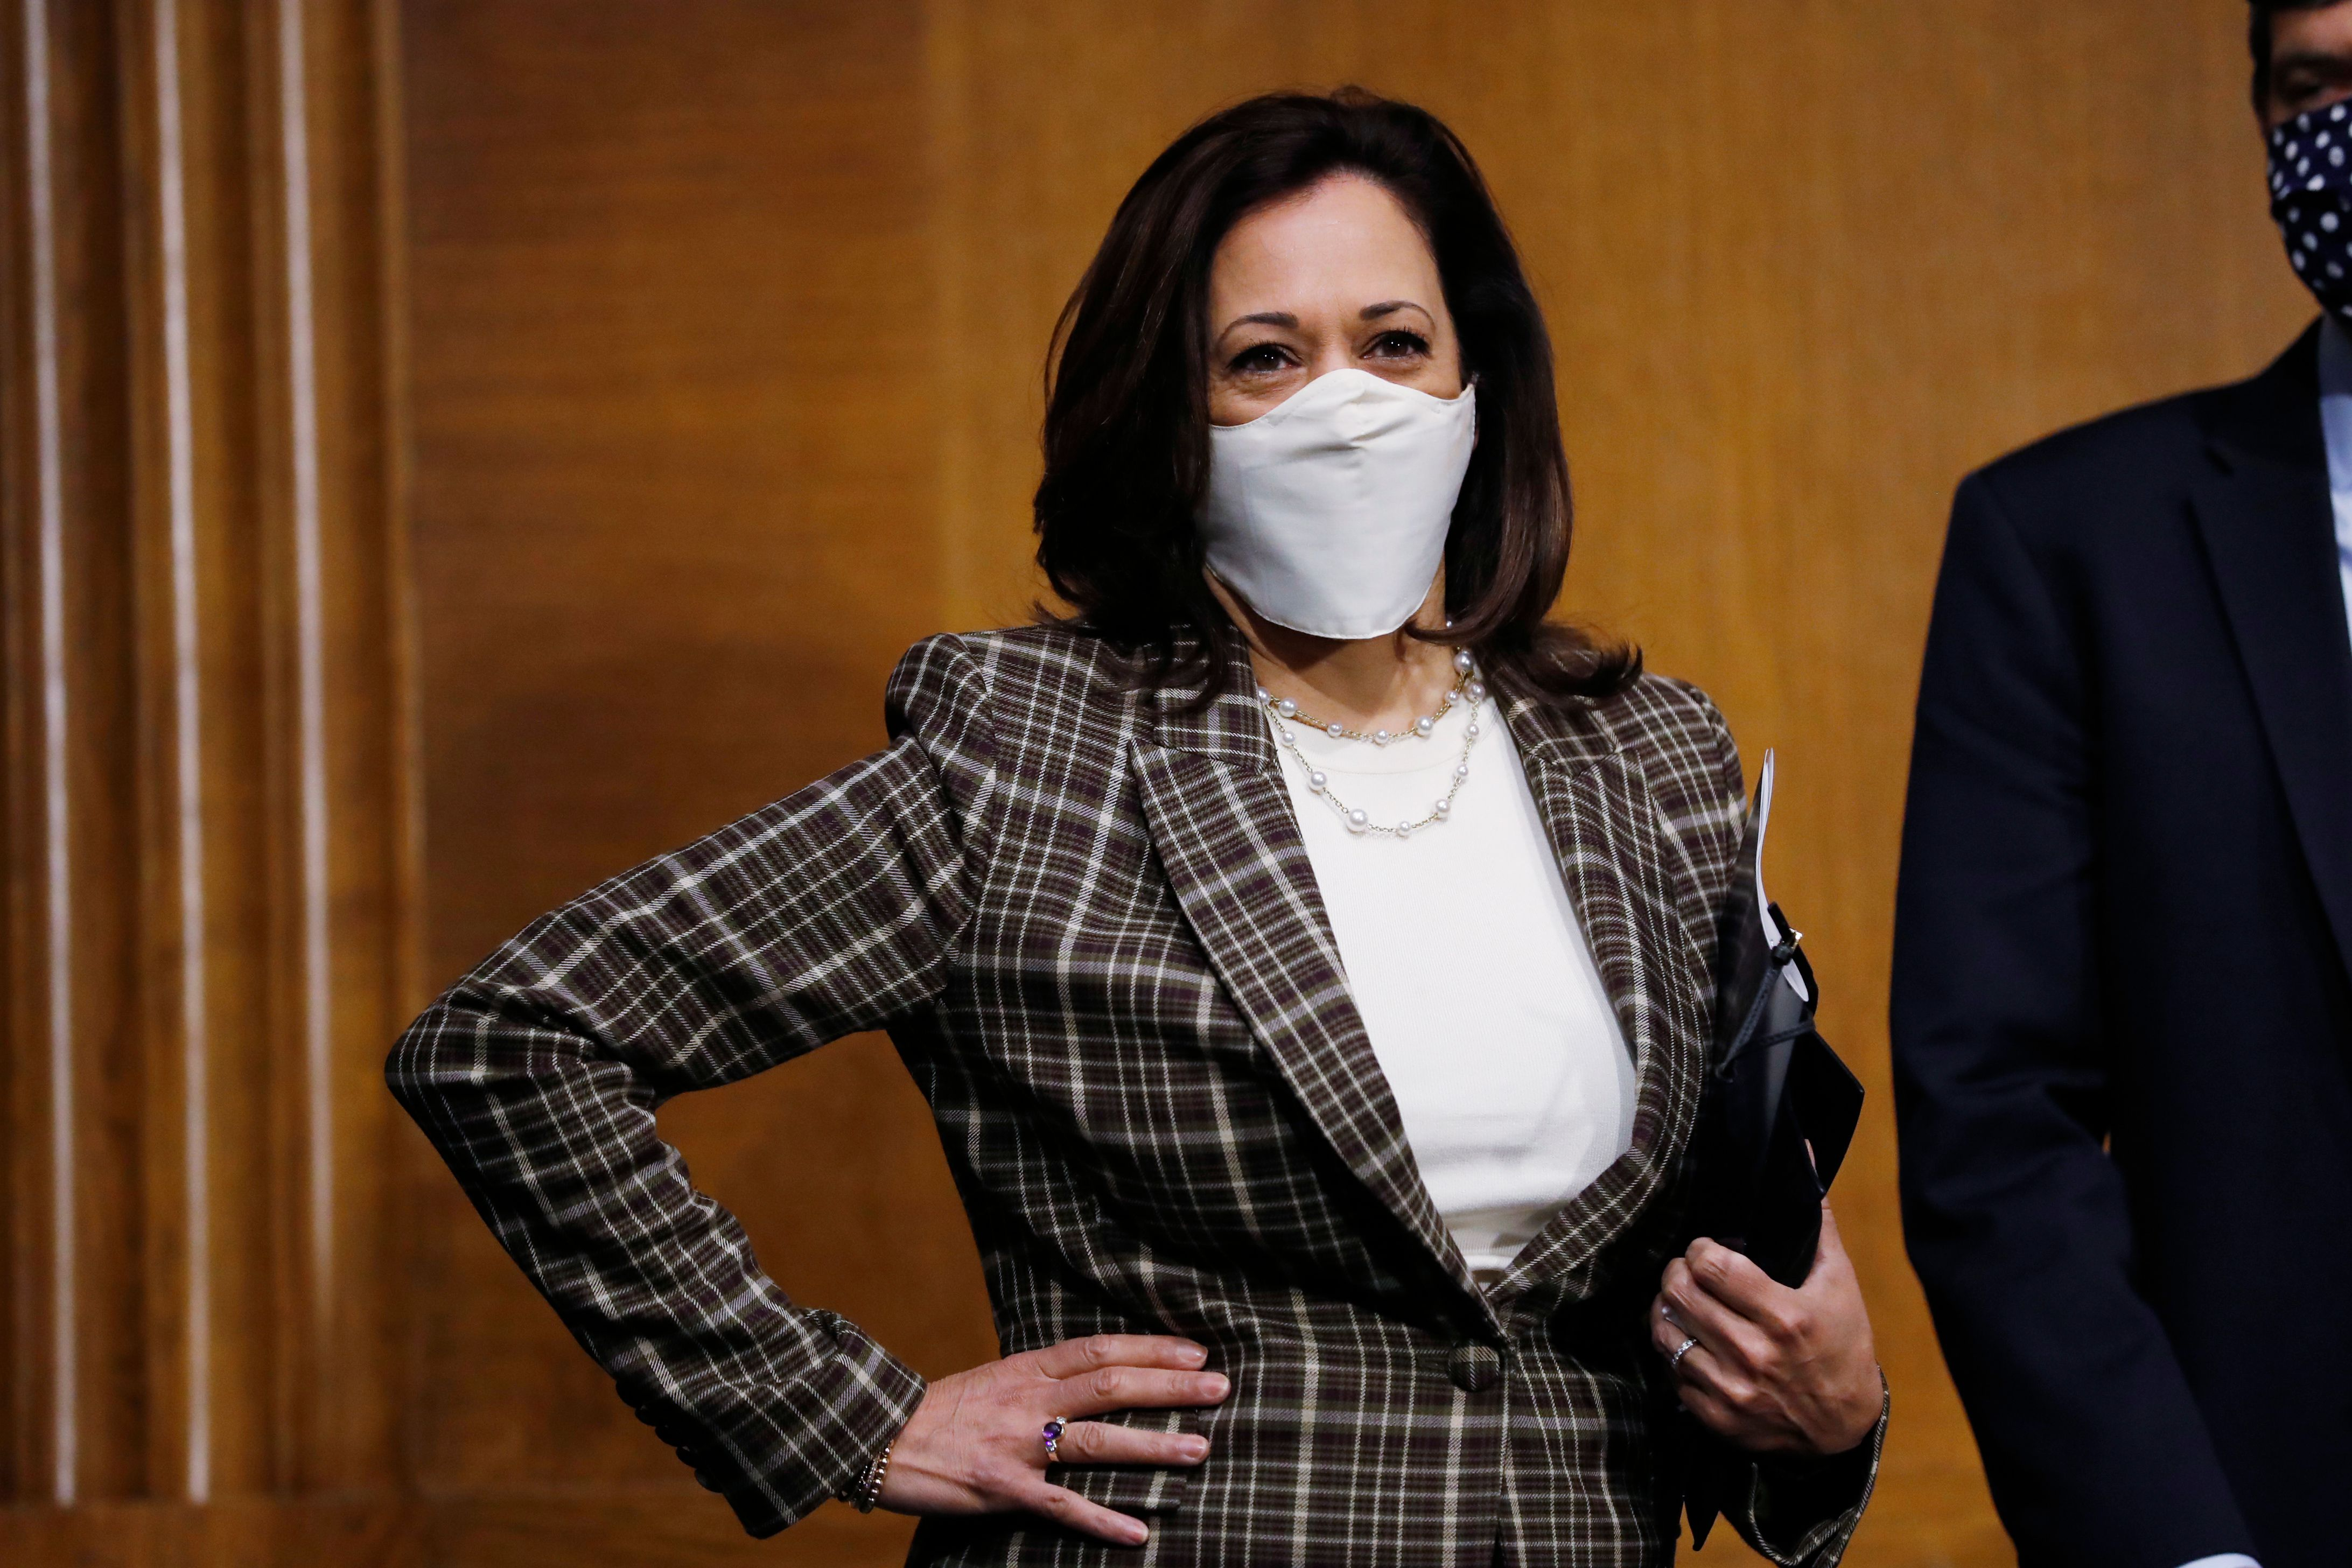 Left Wing S Digs At Kamala Harris Overlook Her Value As A Running Mate The Boston Globe